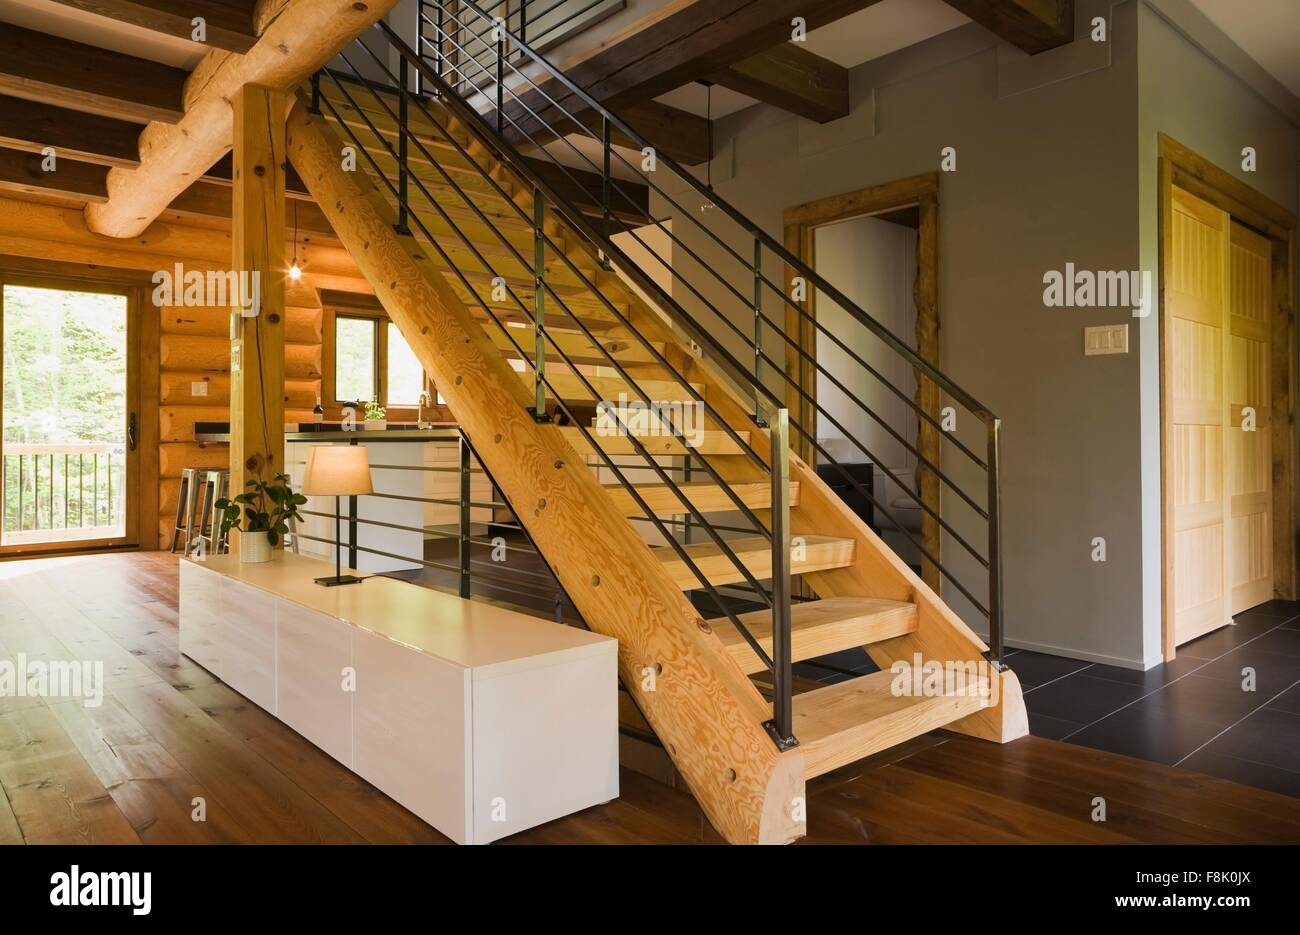 Wood Stairway With Wrought Iron Railings In Modern Eastern White | Pine Handrail For Stairs | Stair Parts | Anti Slip | Handrail Brackets | Stair Treads | Wood Stair